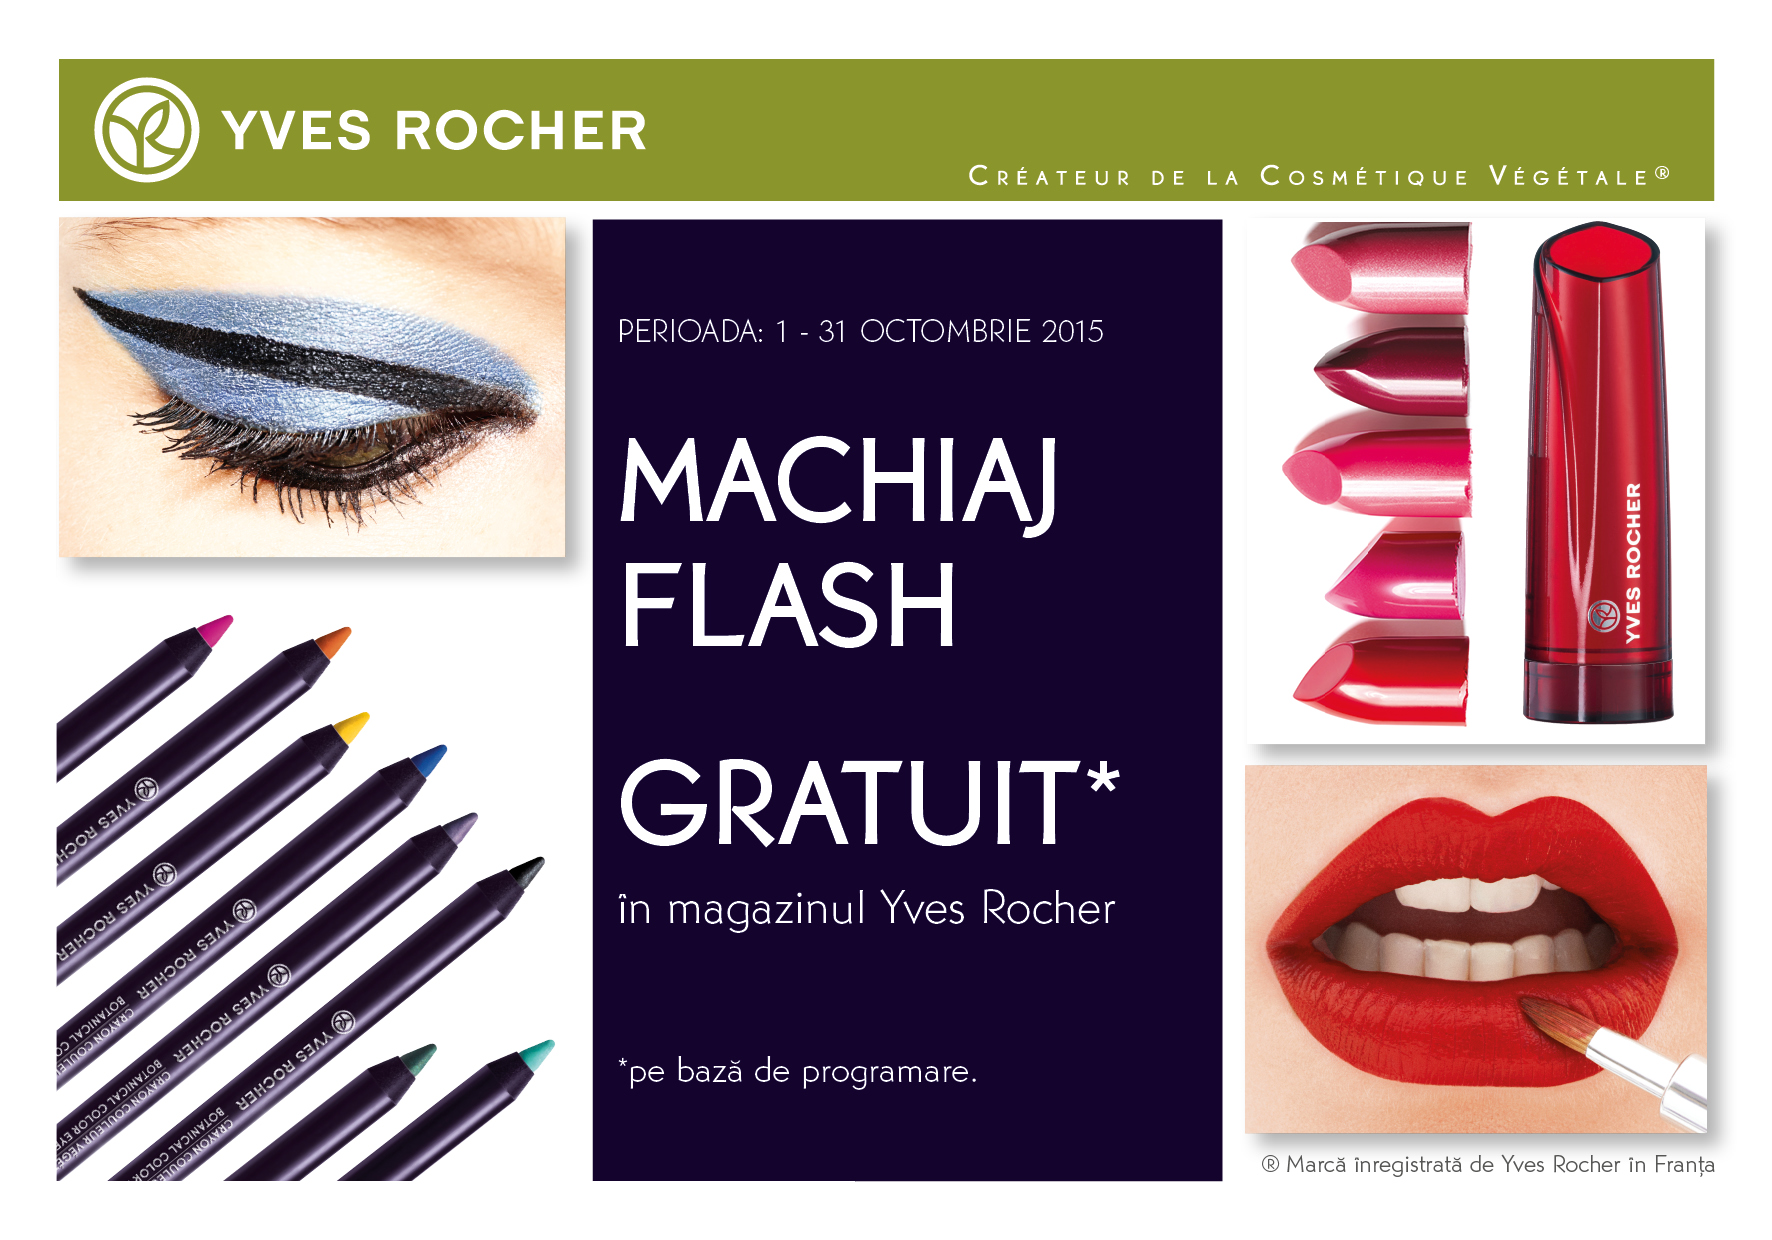 Machiaj flash Yves Rocher